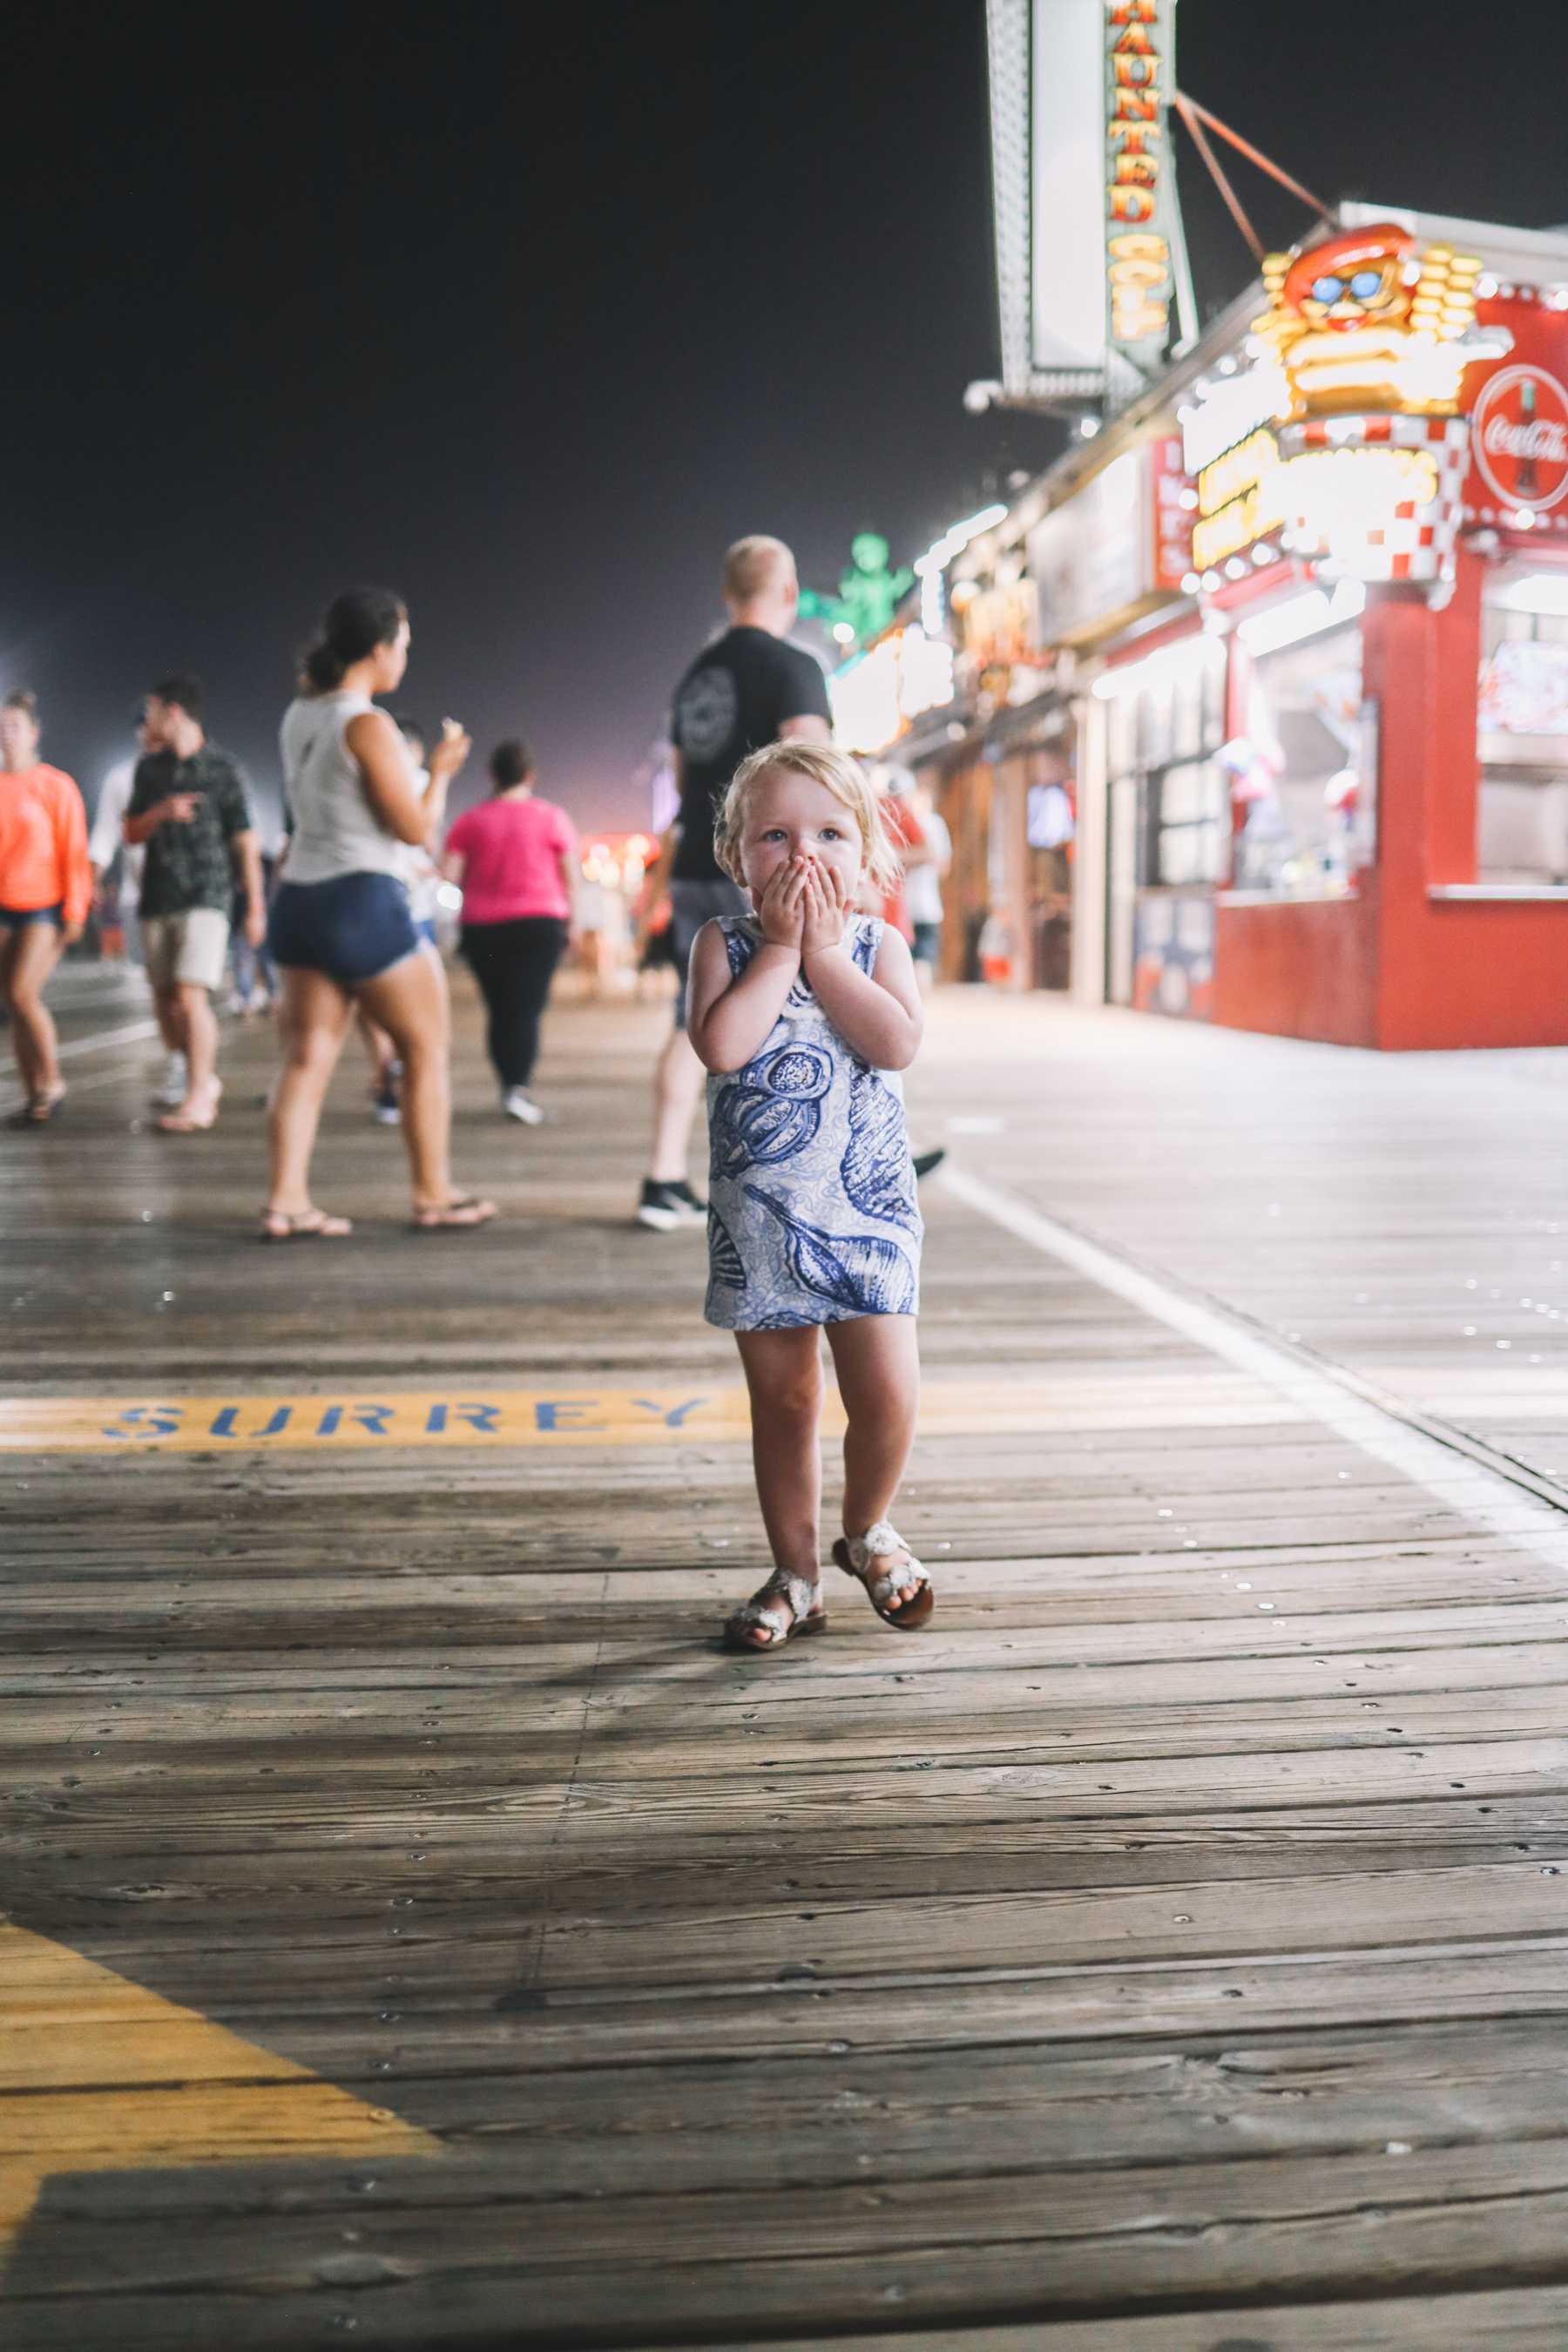 Emma giggles and covers her mouth while walking down the pier, facing head on